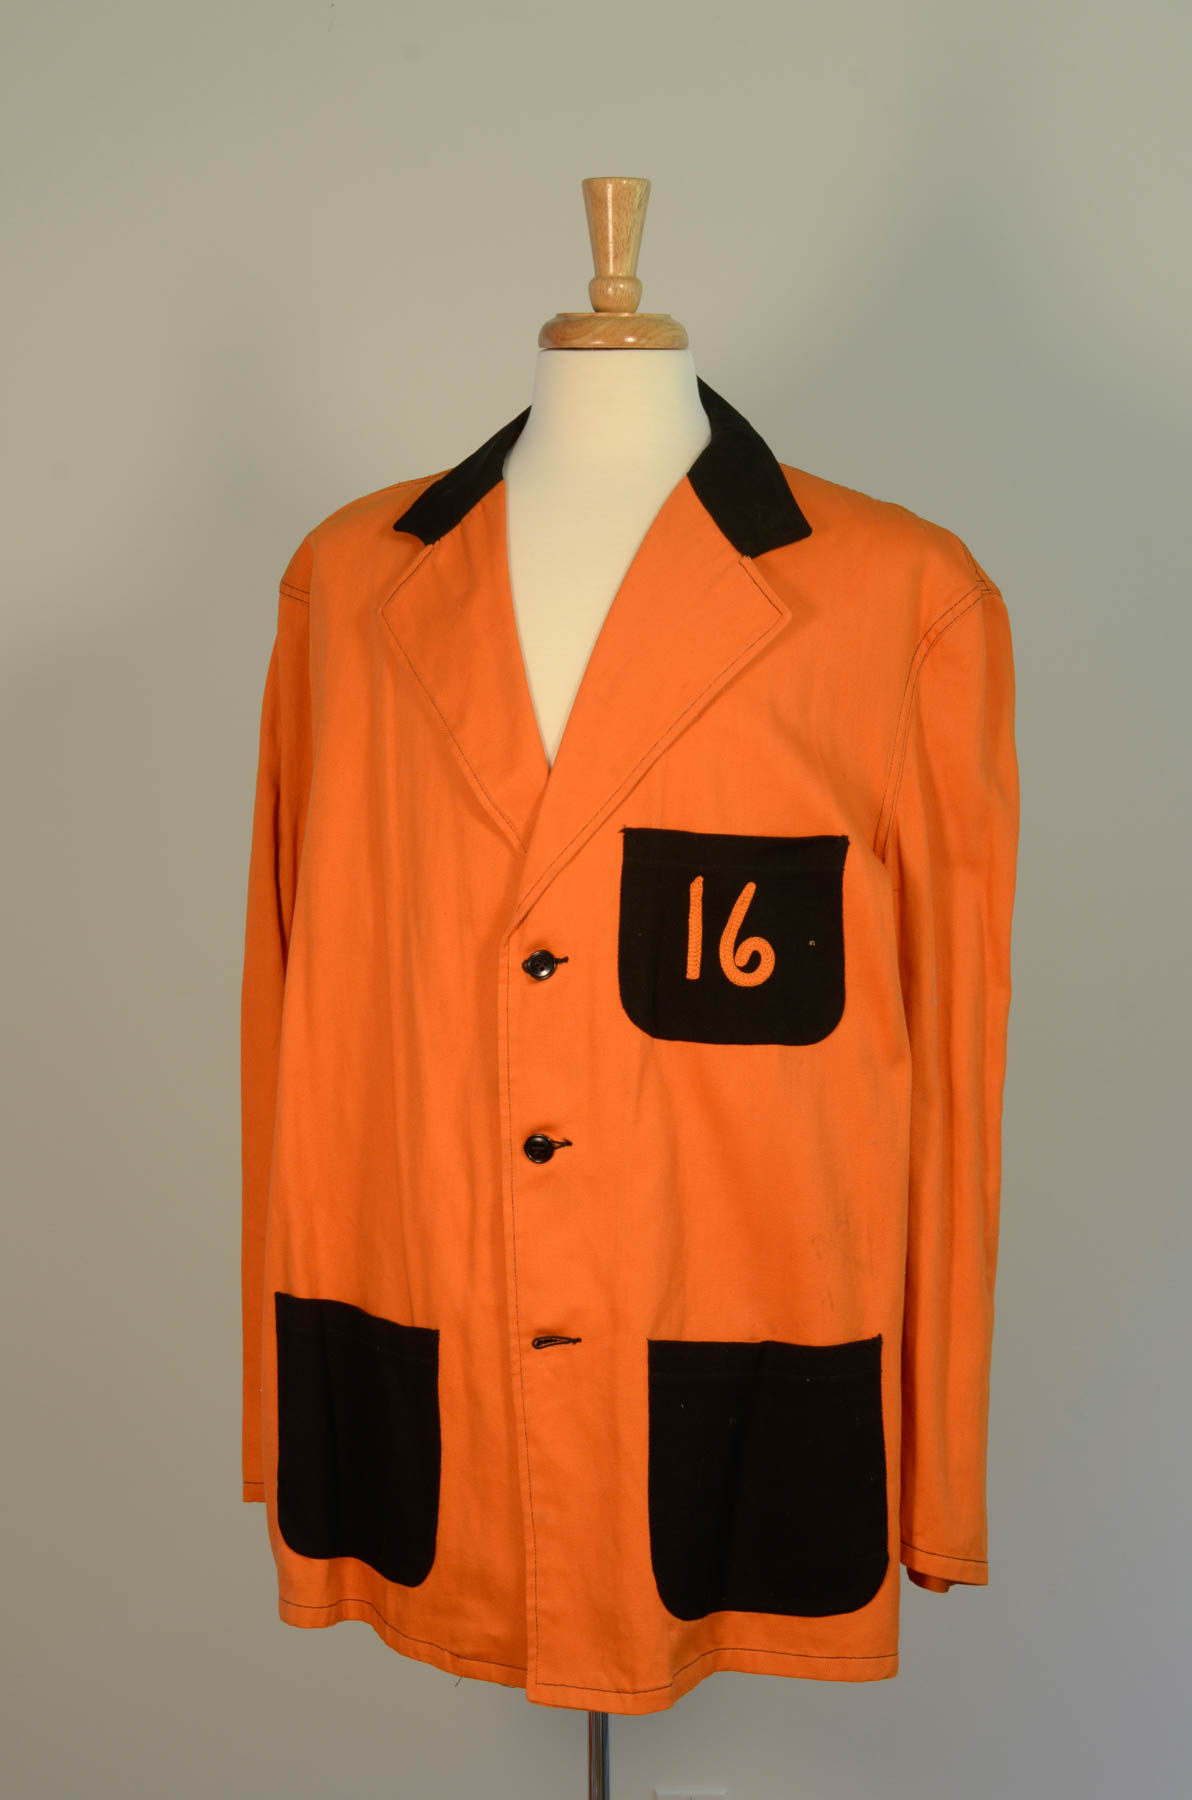 Reunion Jacket 1916 Variation 1 Front